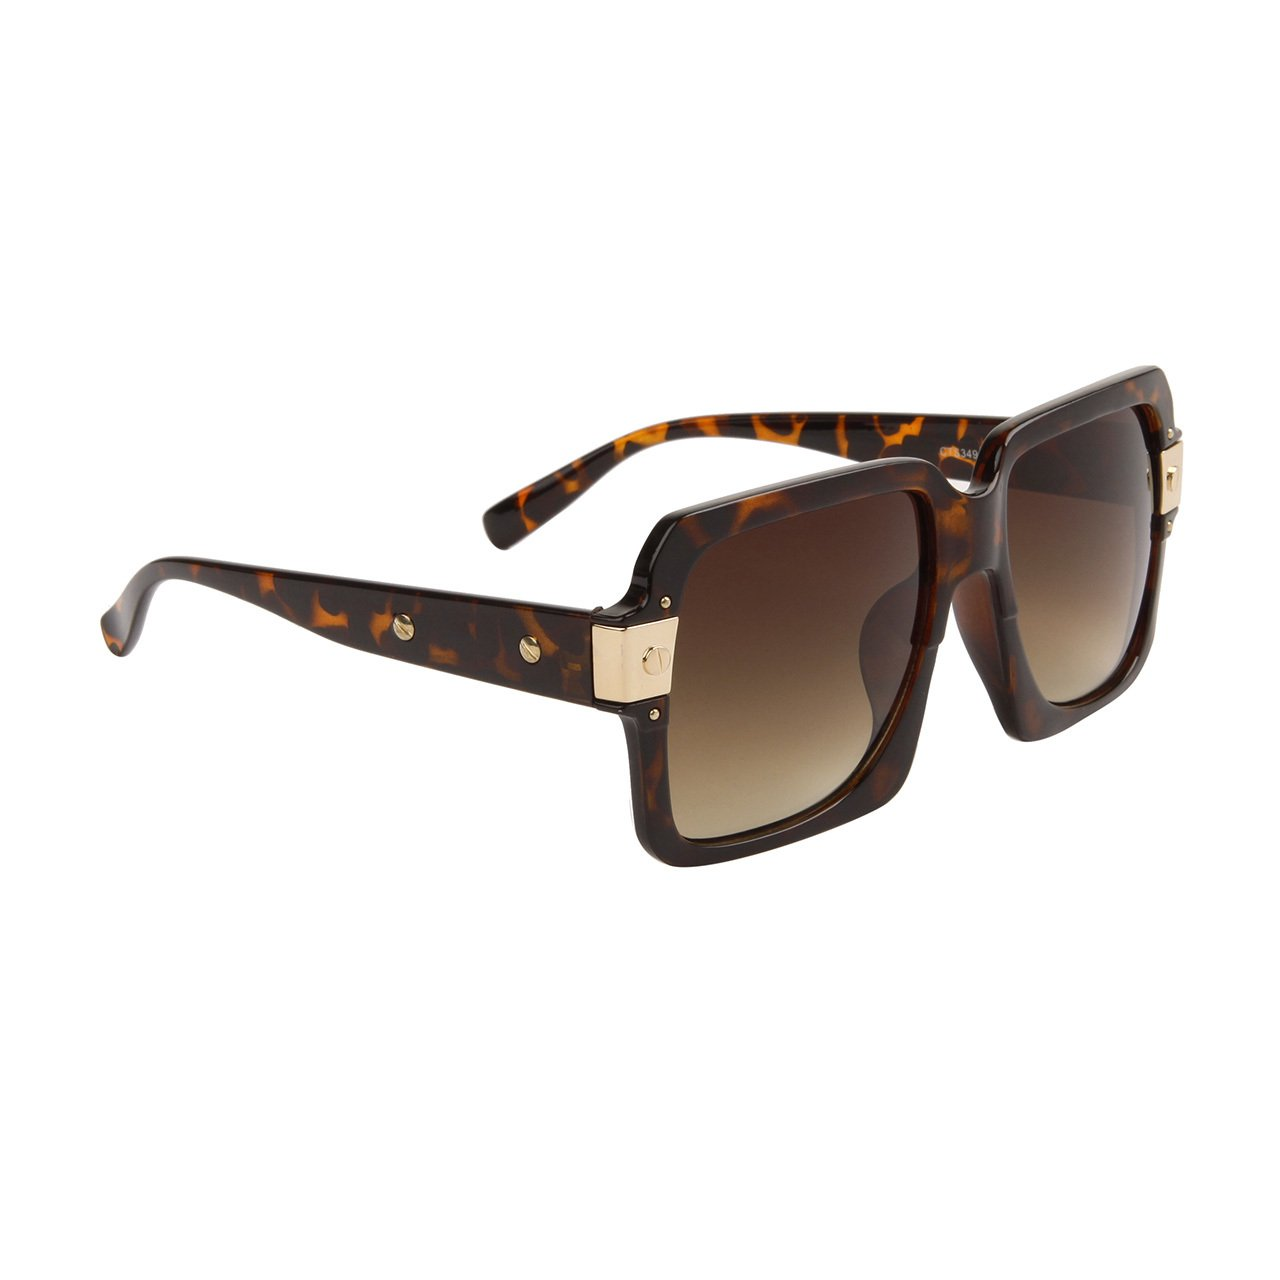 WOMEN'S LARGE DESIGNER INSPIRED BROWN SQUARE SUNGLASSES TOP DEPARTMENT STORE QUALITY